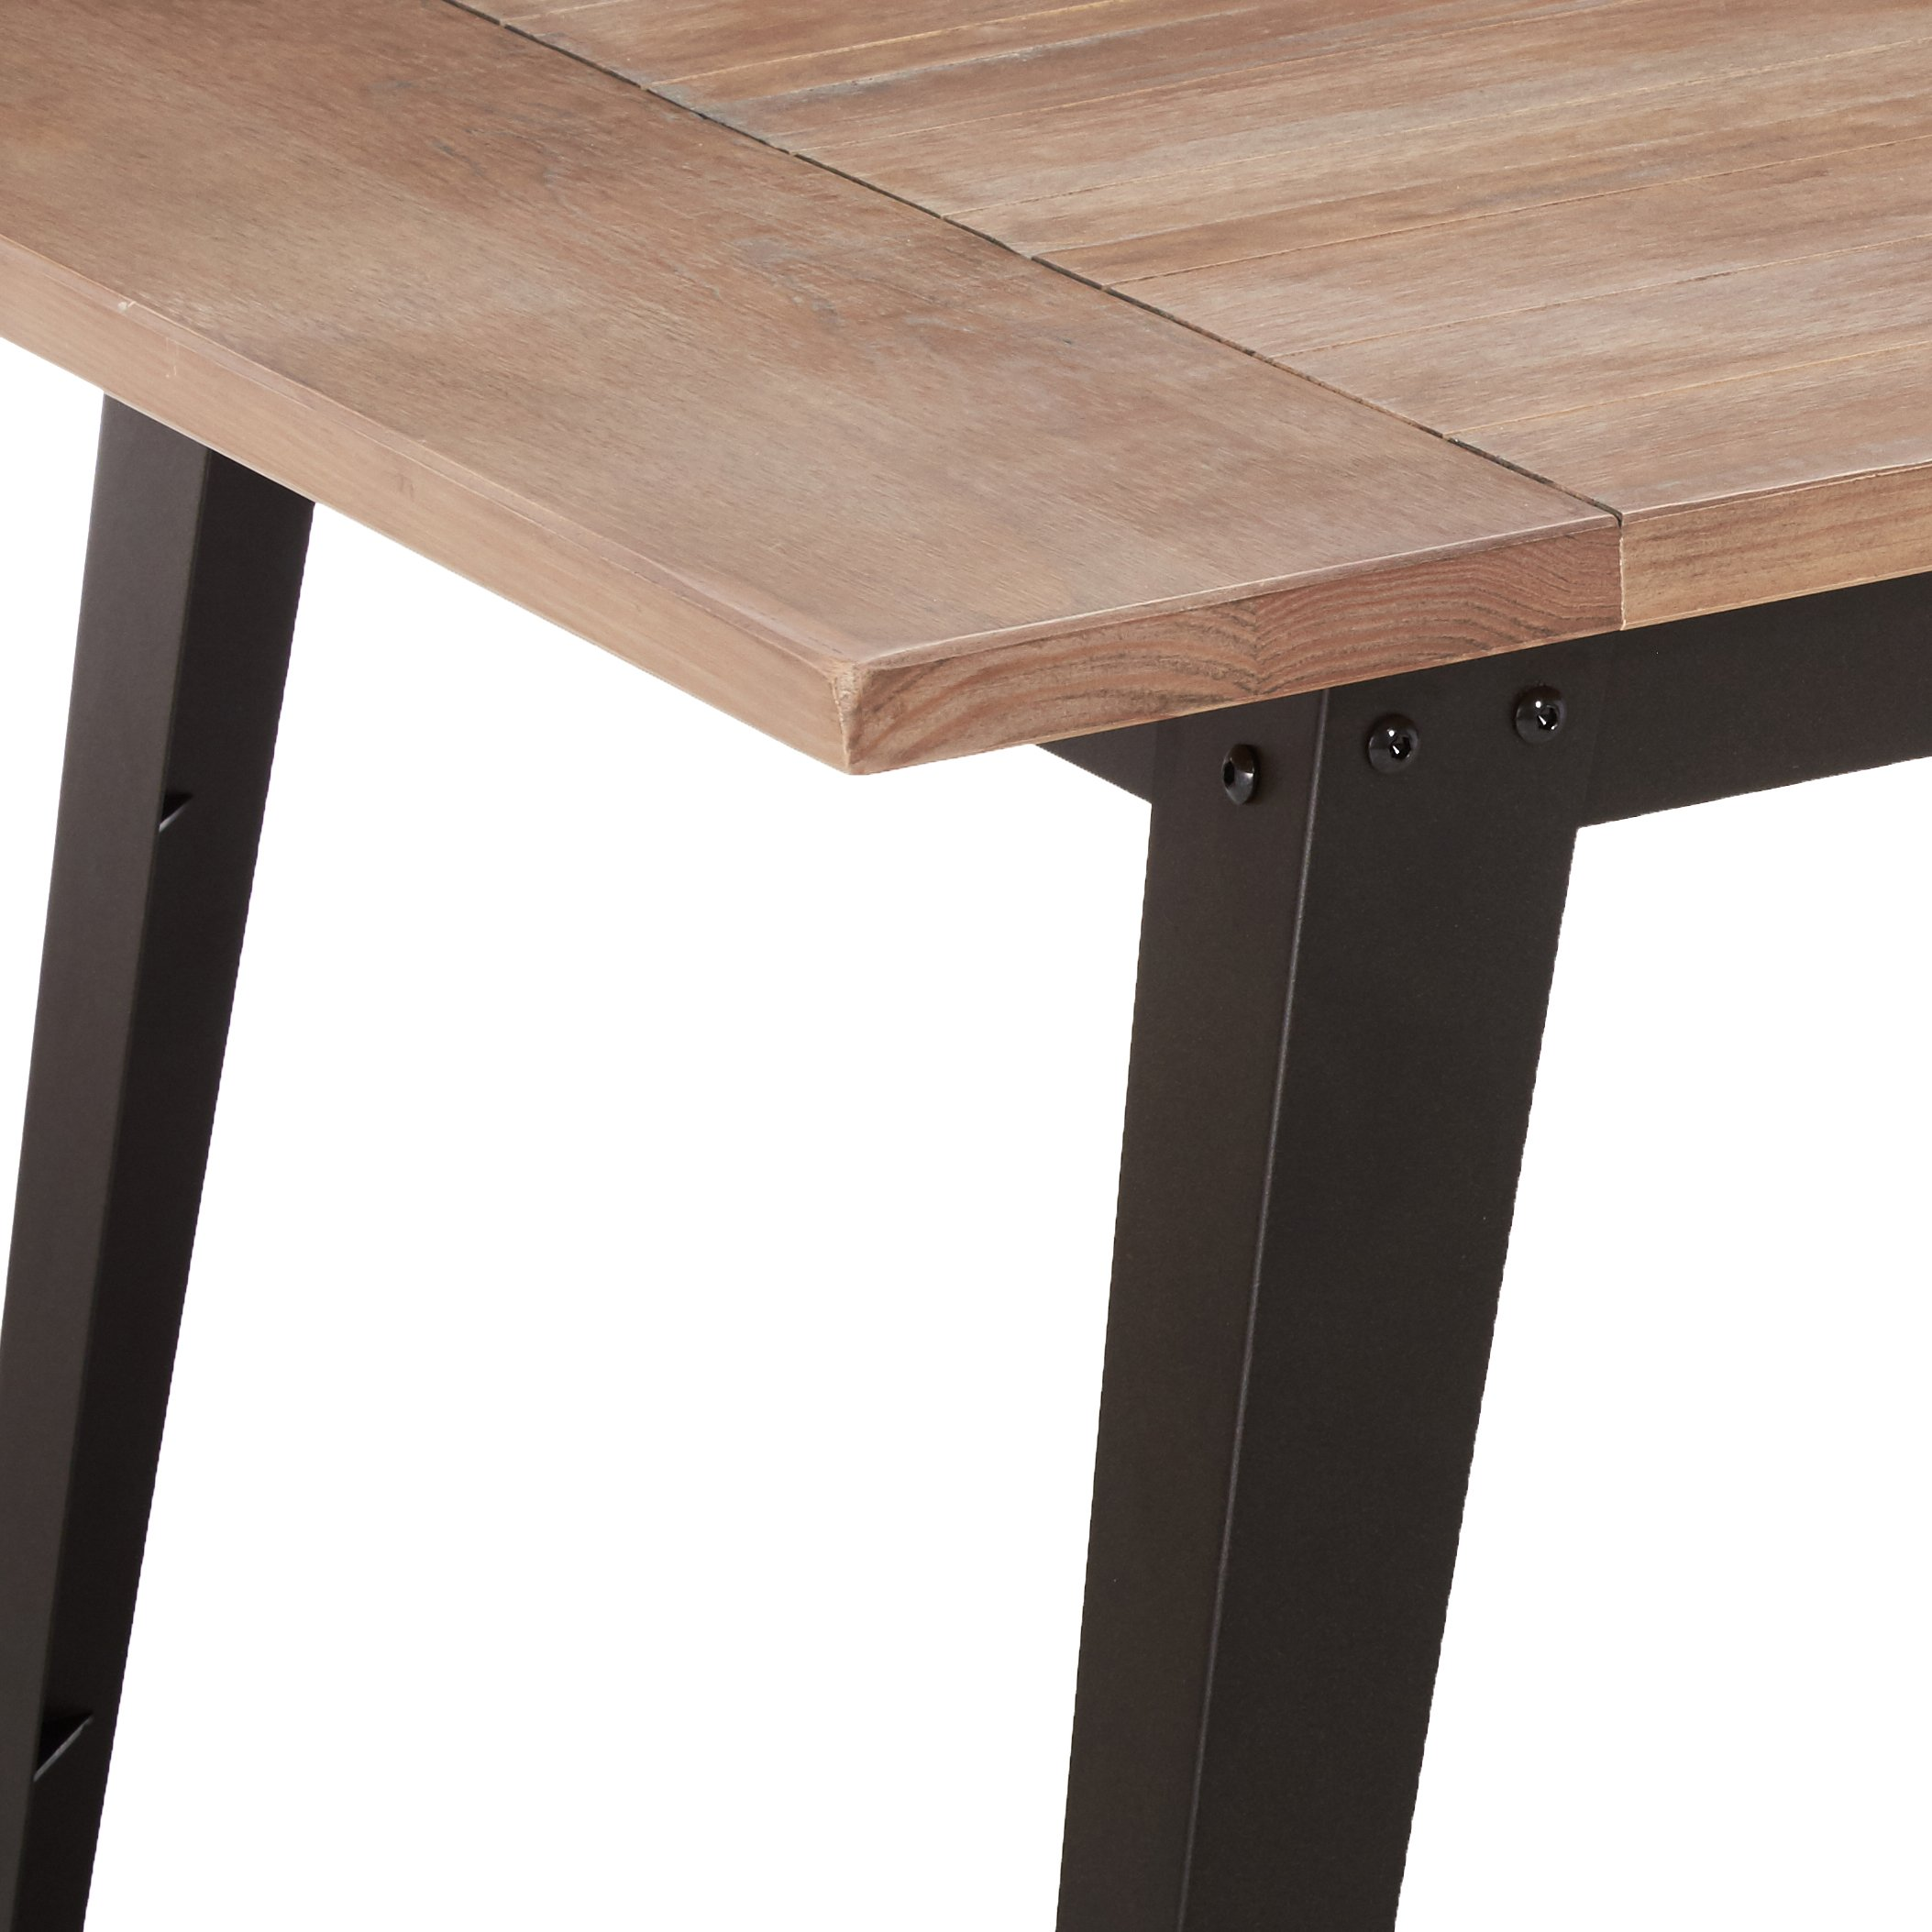 Zinus Donna Wood and Metal Dining Table by Zinus (Image #6)